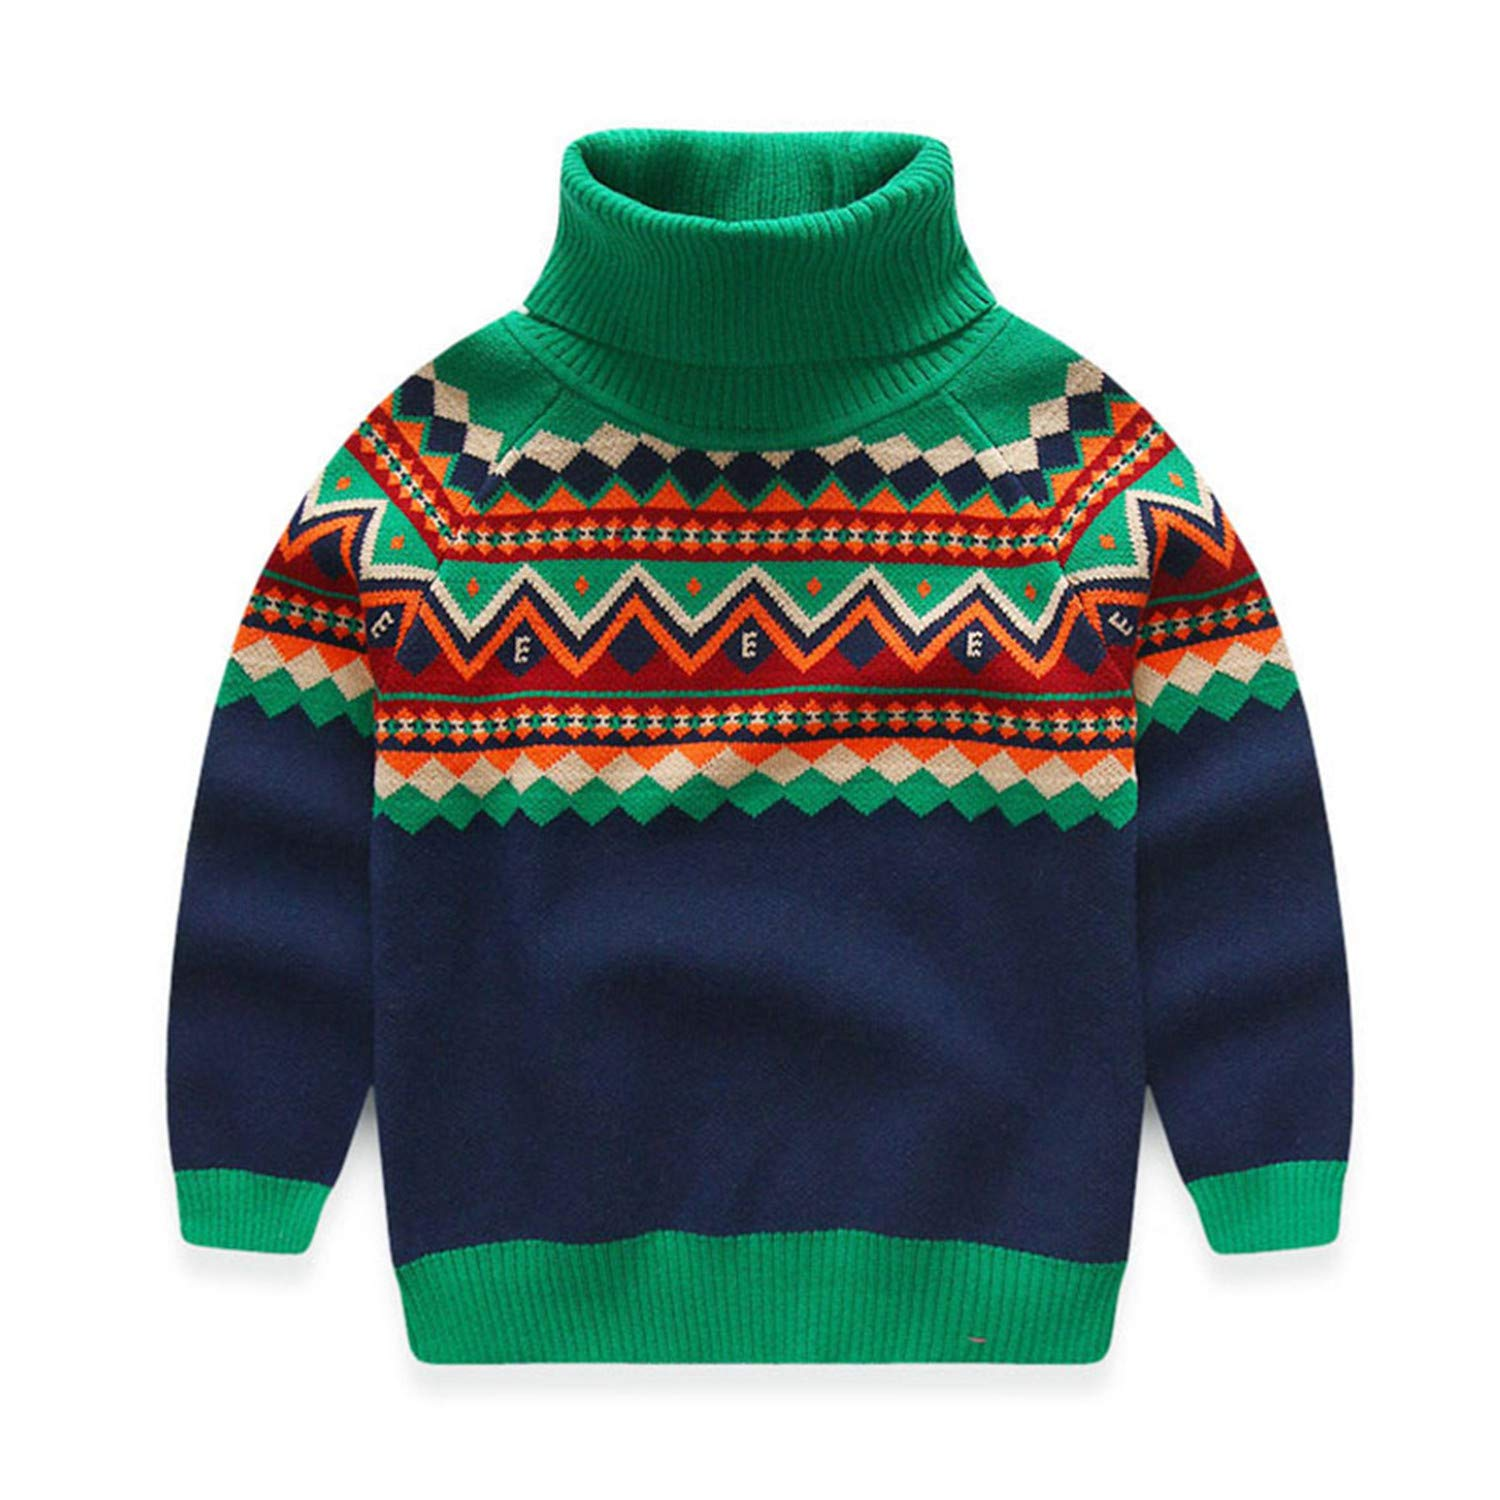 Huainsta Warm Color Block Thickening High Neck Knitted Kids Baby Boy Turtleneck Sweater